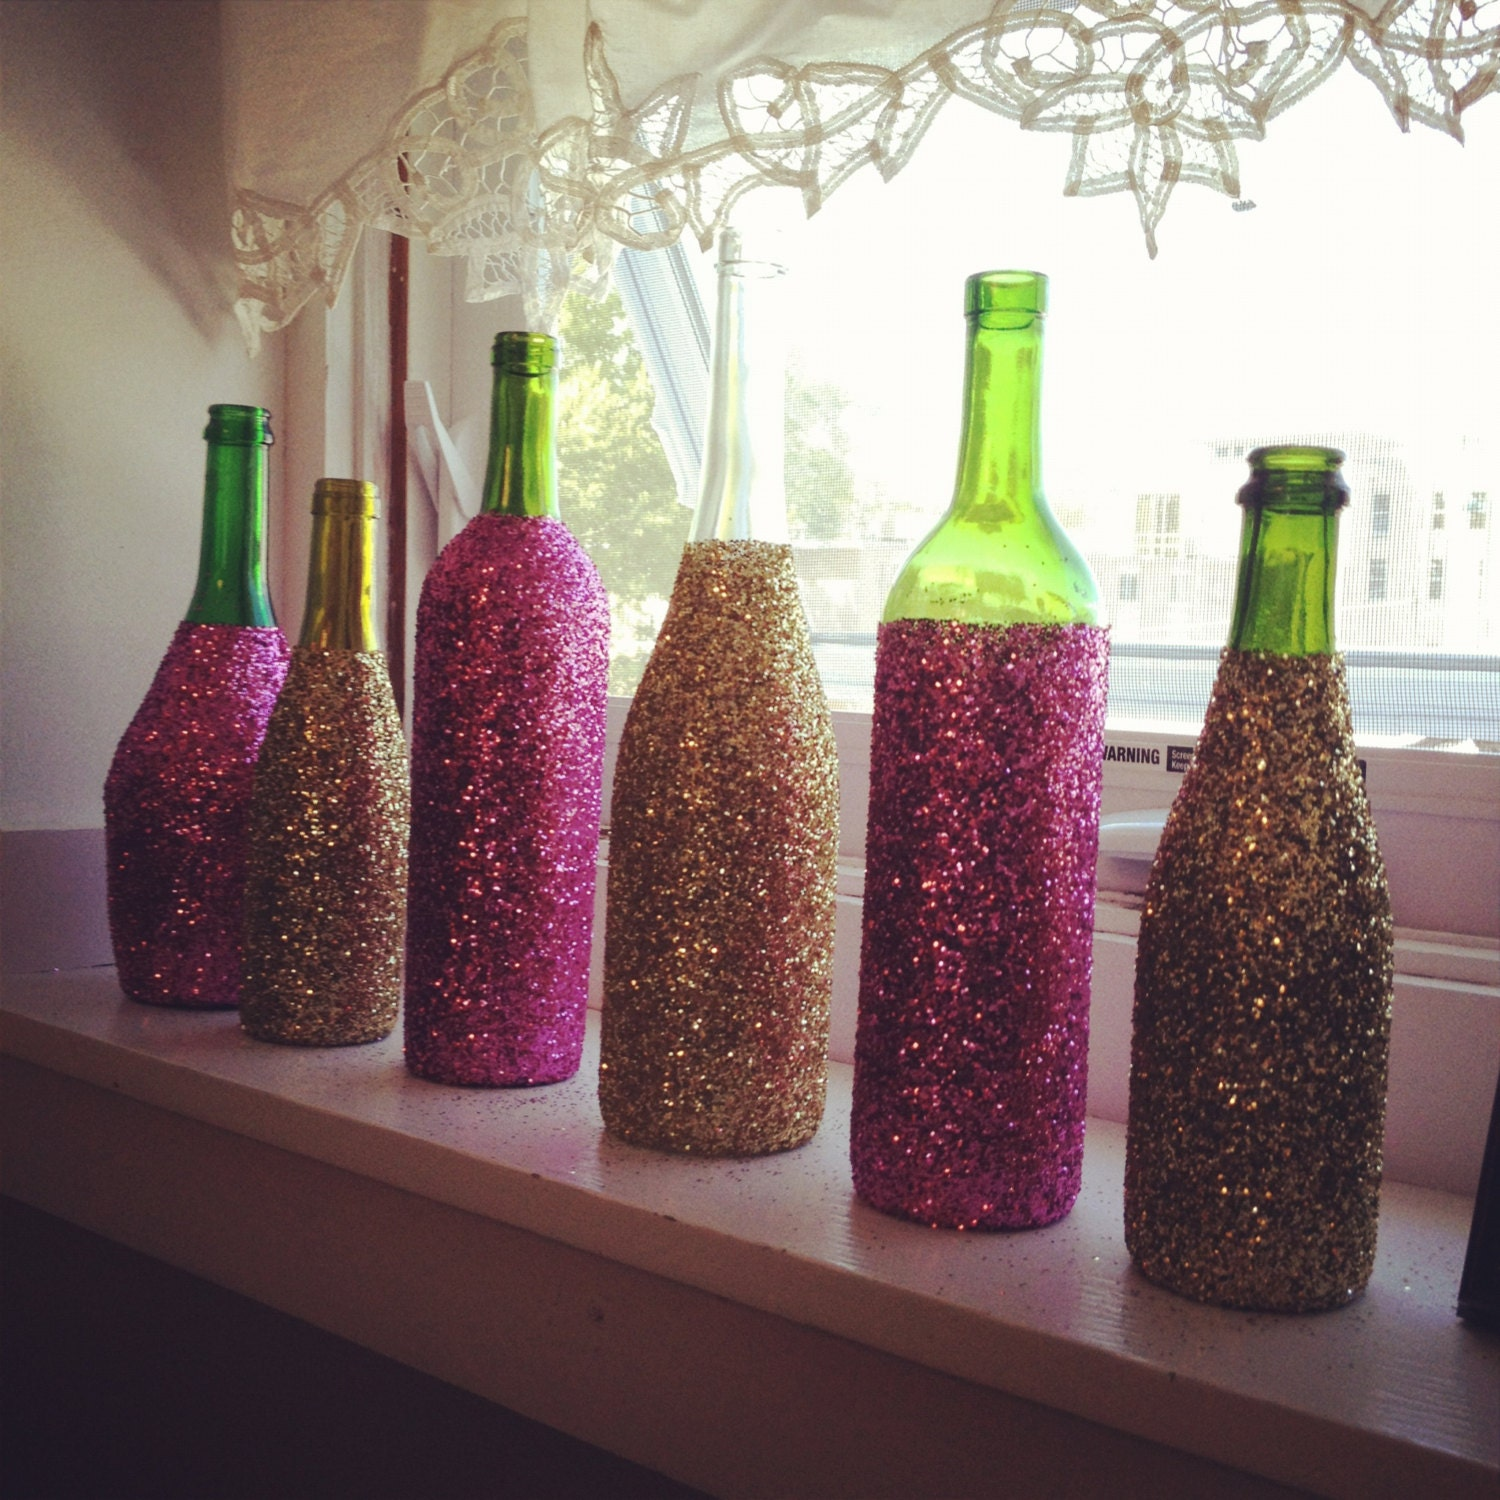 decor and oil lifebuzz old turn olive cor wine stunning bottles d creative ways to into vinegar limit decorative home